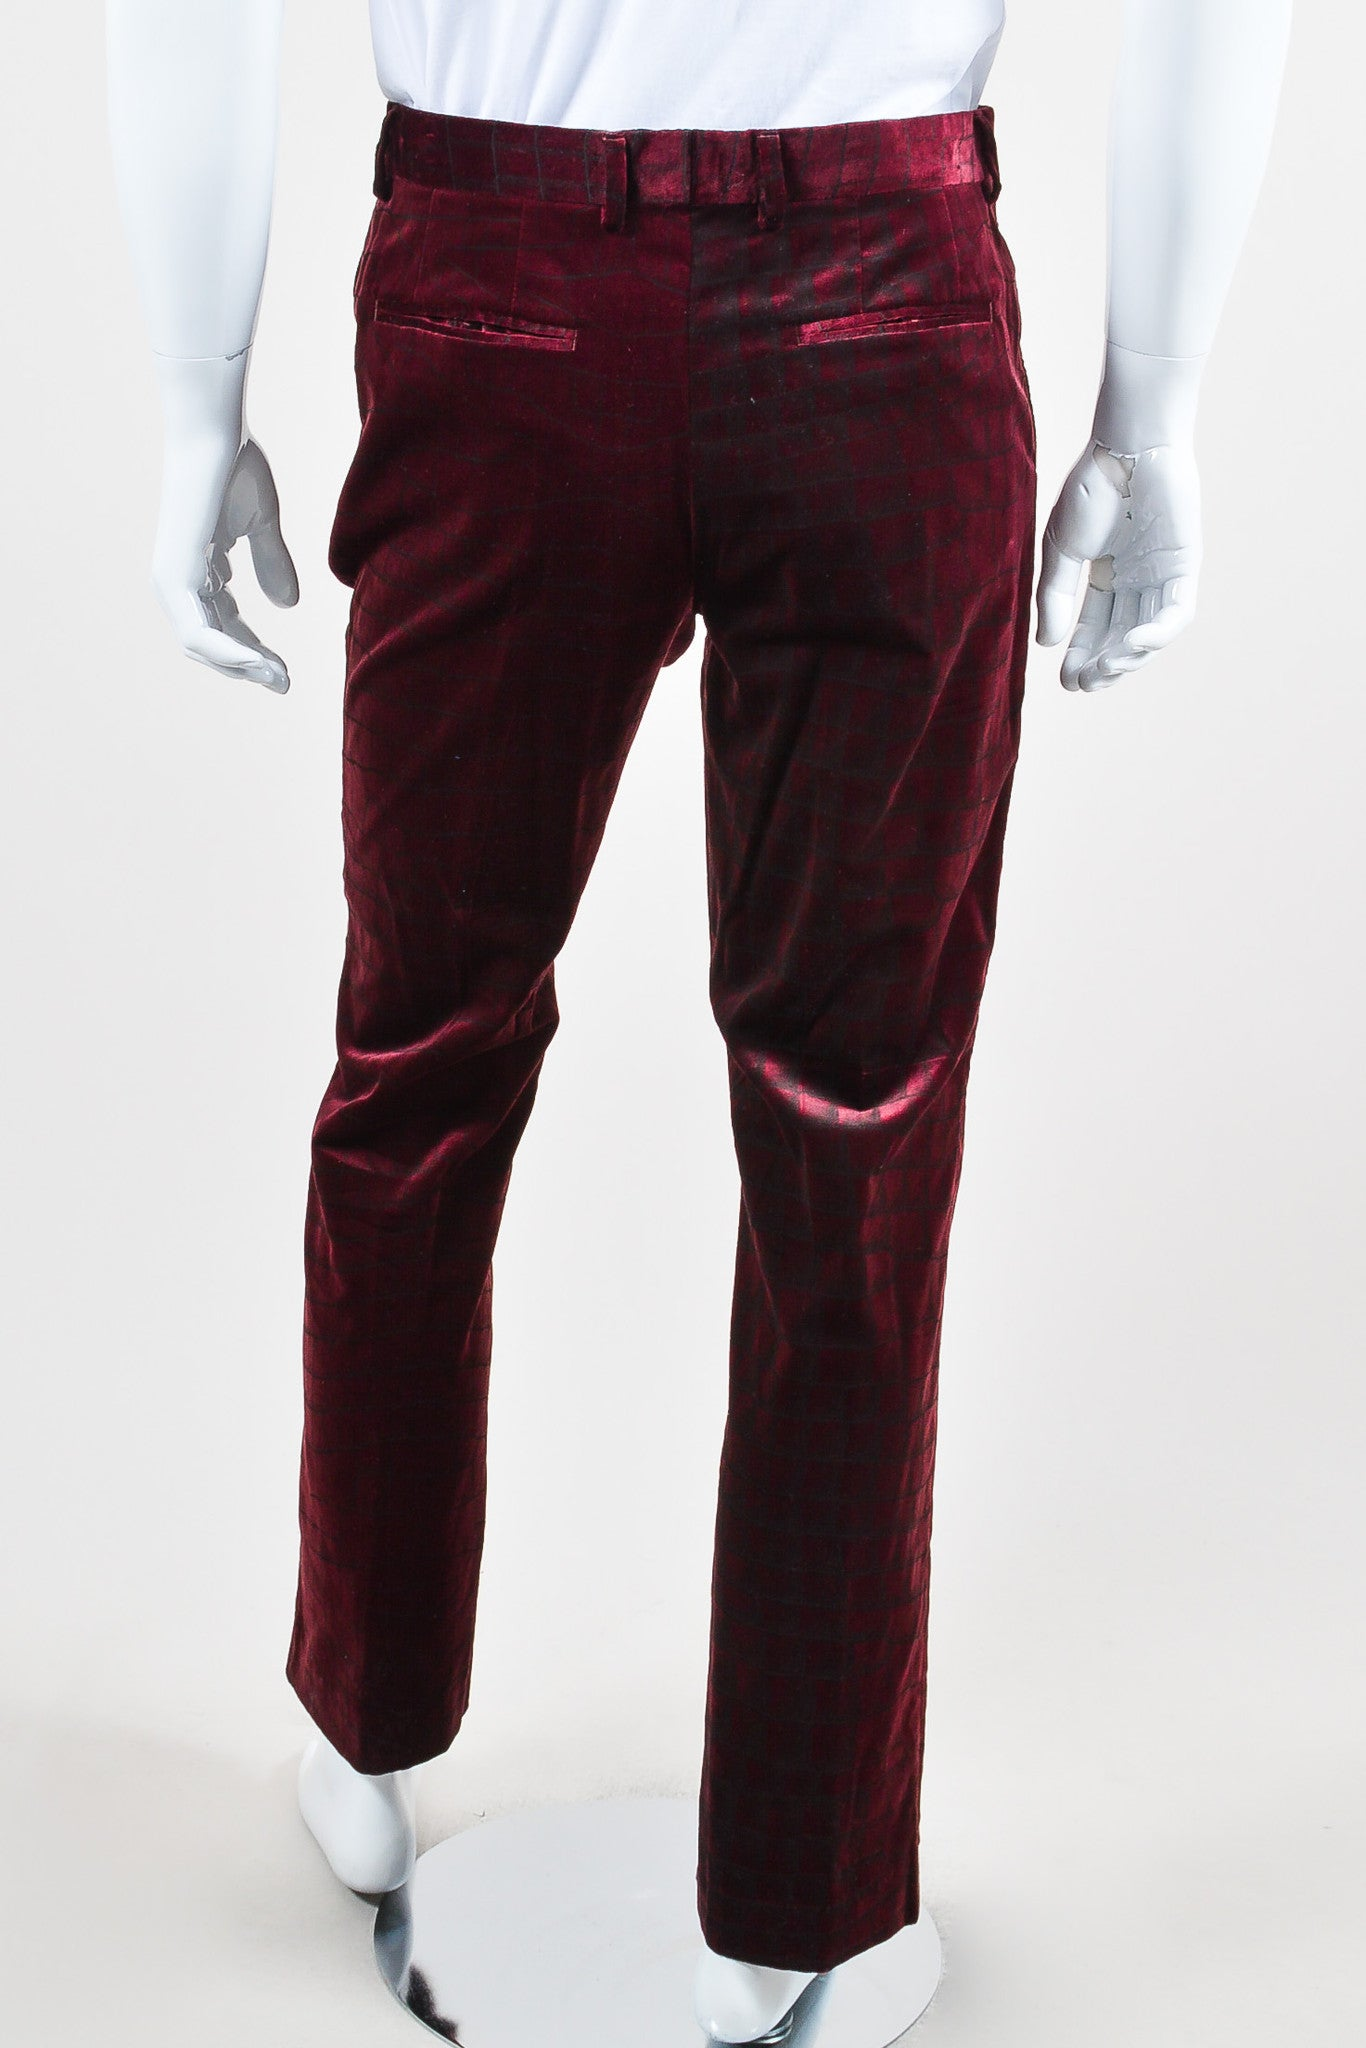 MEN'S Maroon Roberto Cavalli Velvet Alligator Trousers Back